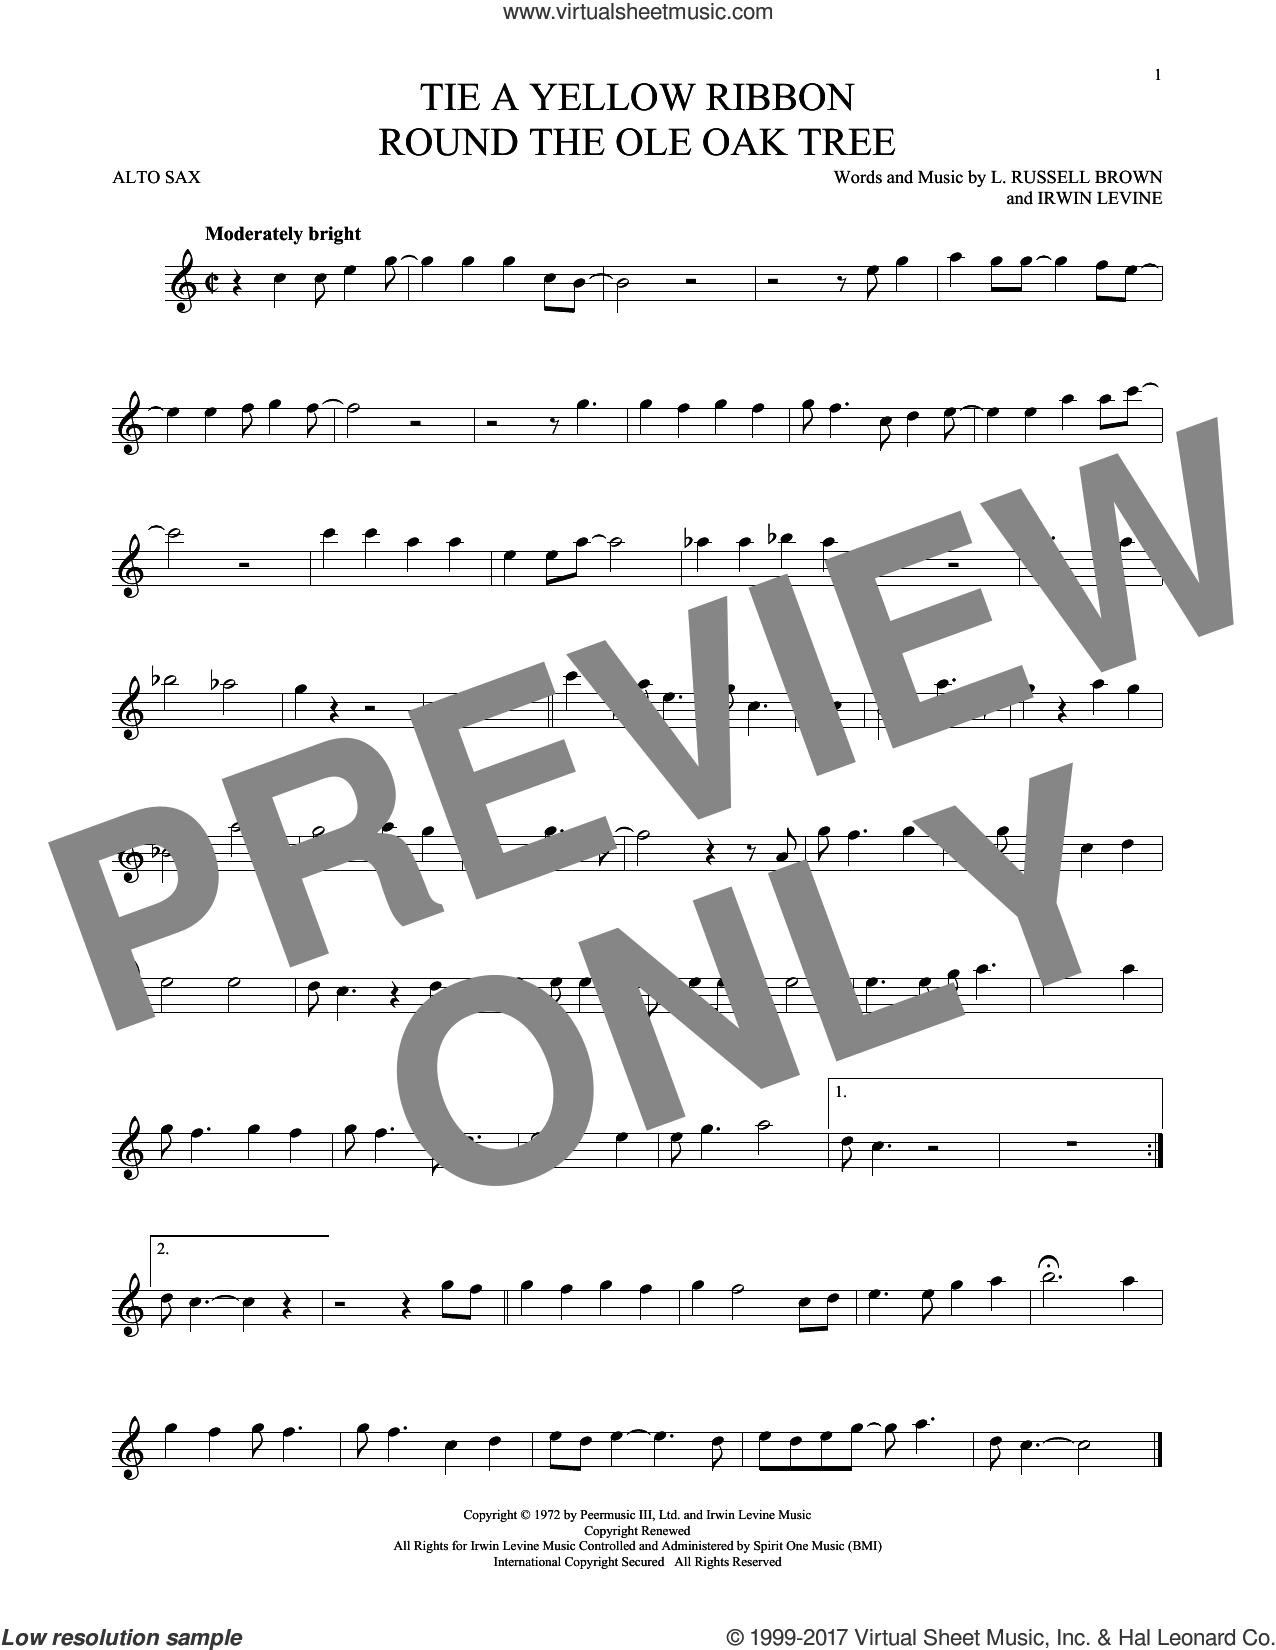 Tie A Yellow Ribbon Round The Ole Oak Tree sheet music for alto saxophone solo by Dawn featuring Tony Orlando, Irwin Levine and L. Russell Brown, intermediate skill level